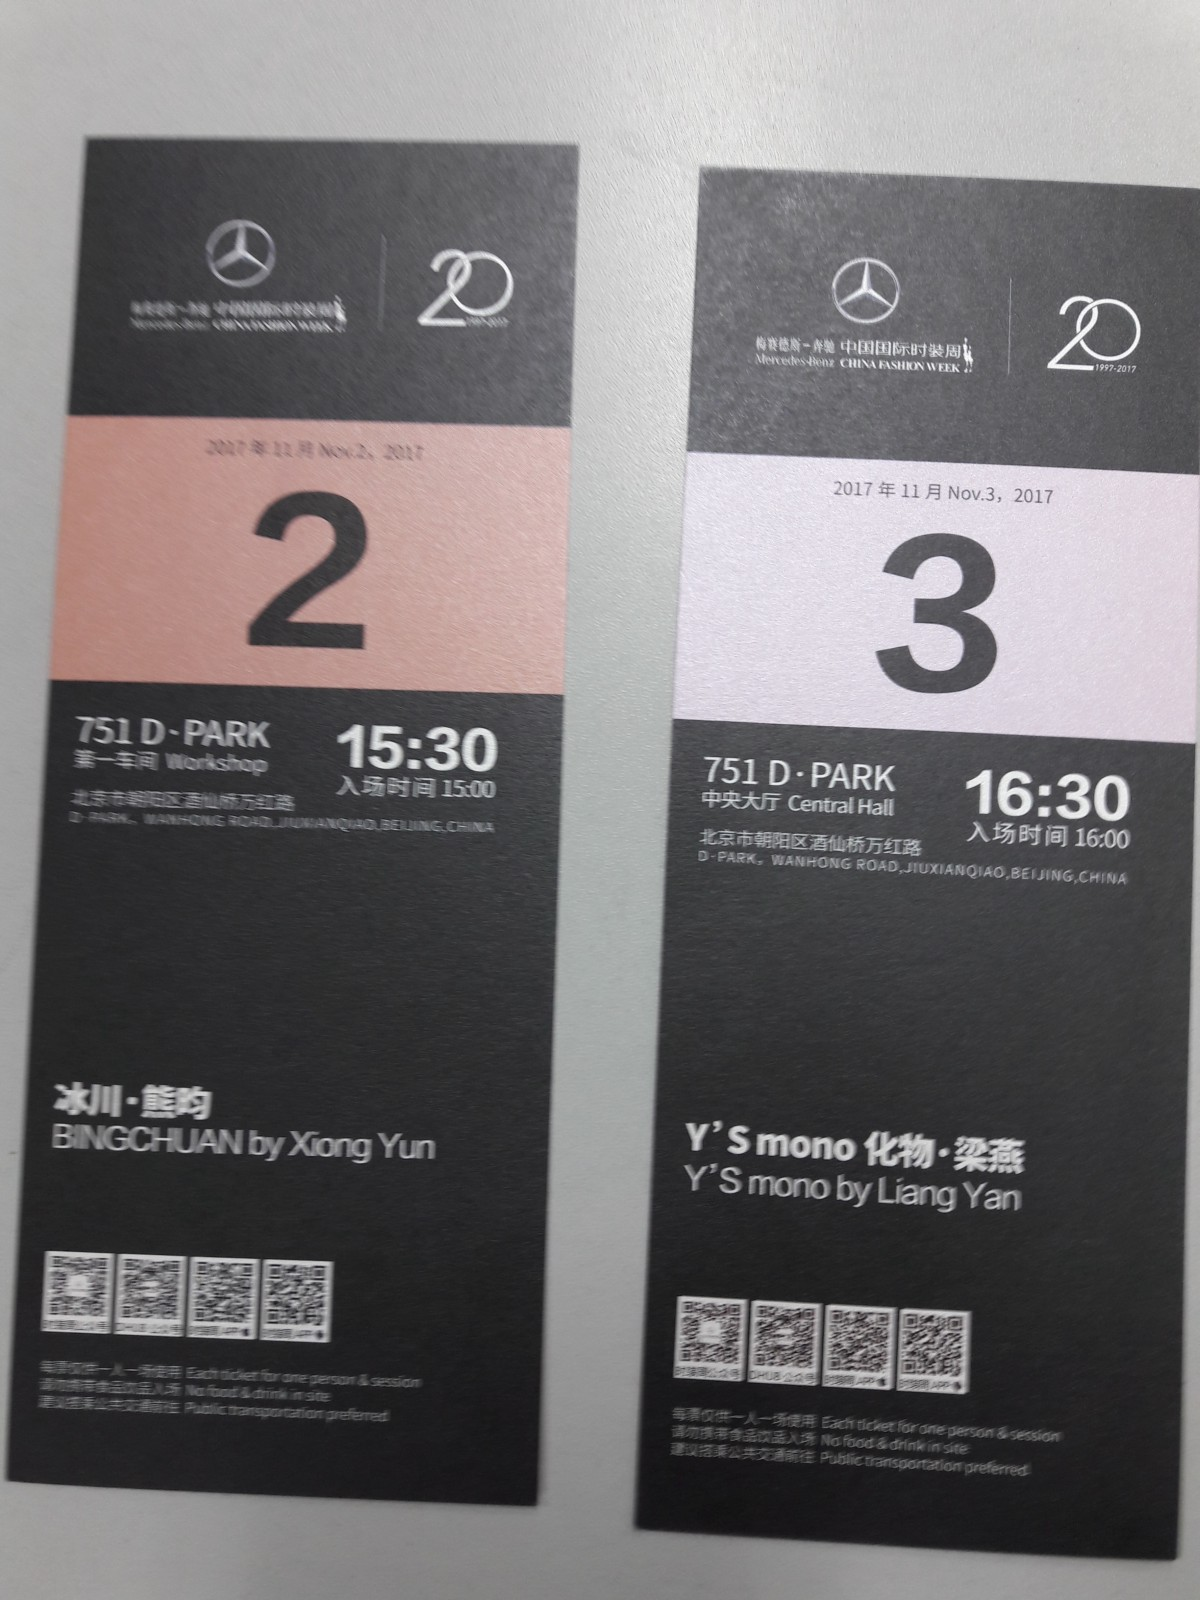 Beijing Fashion Week Invitations Trade Show And Fashion Shows Part 1